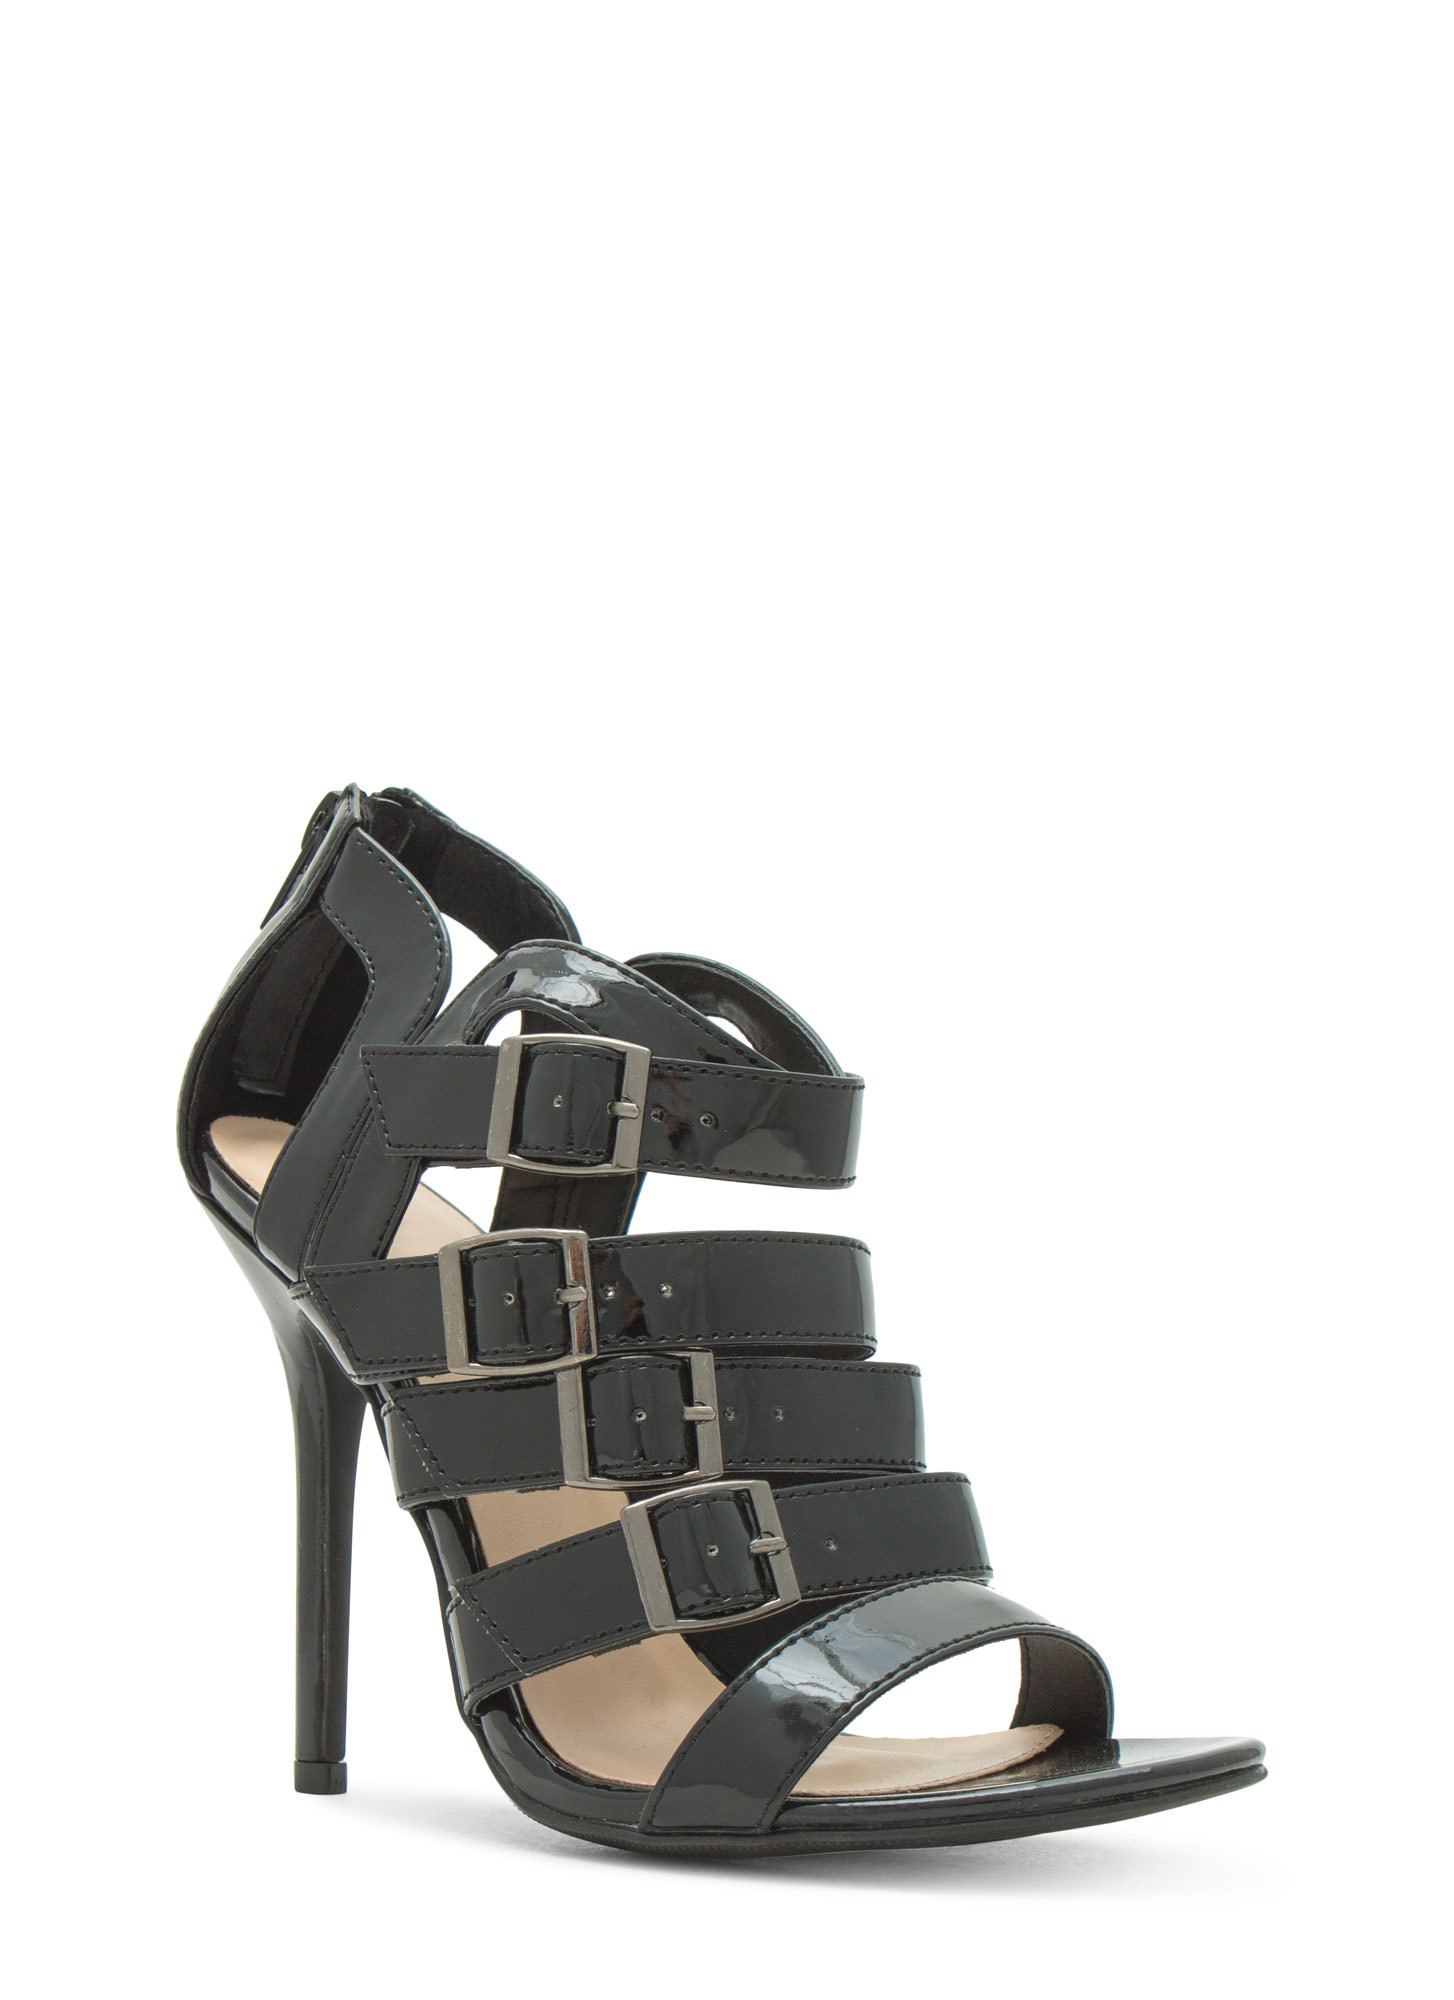 Ladder To The Top Strappy Heels BLACK